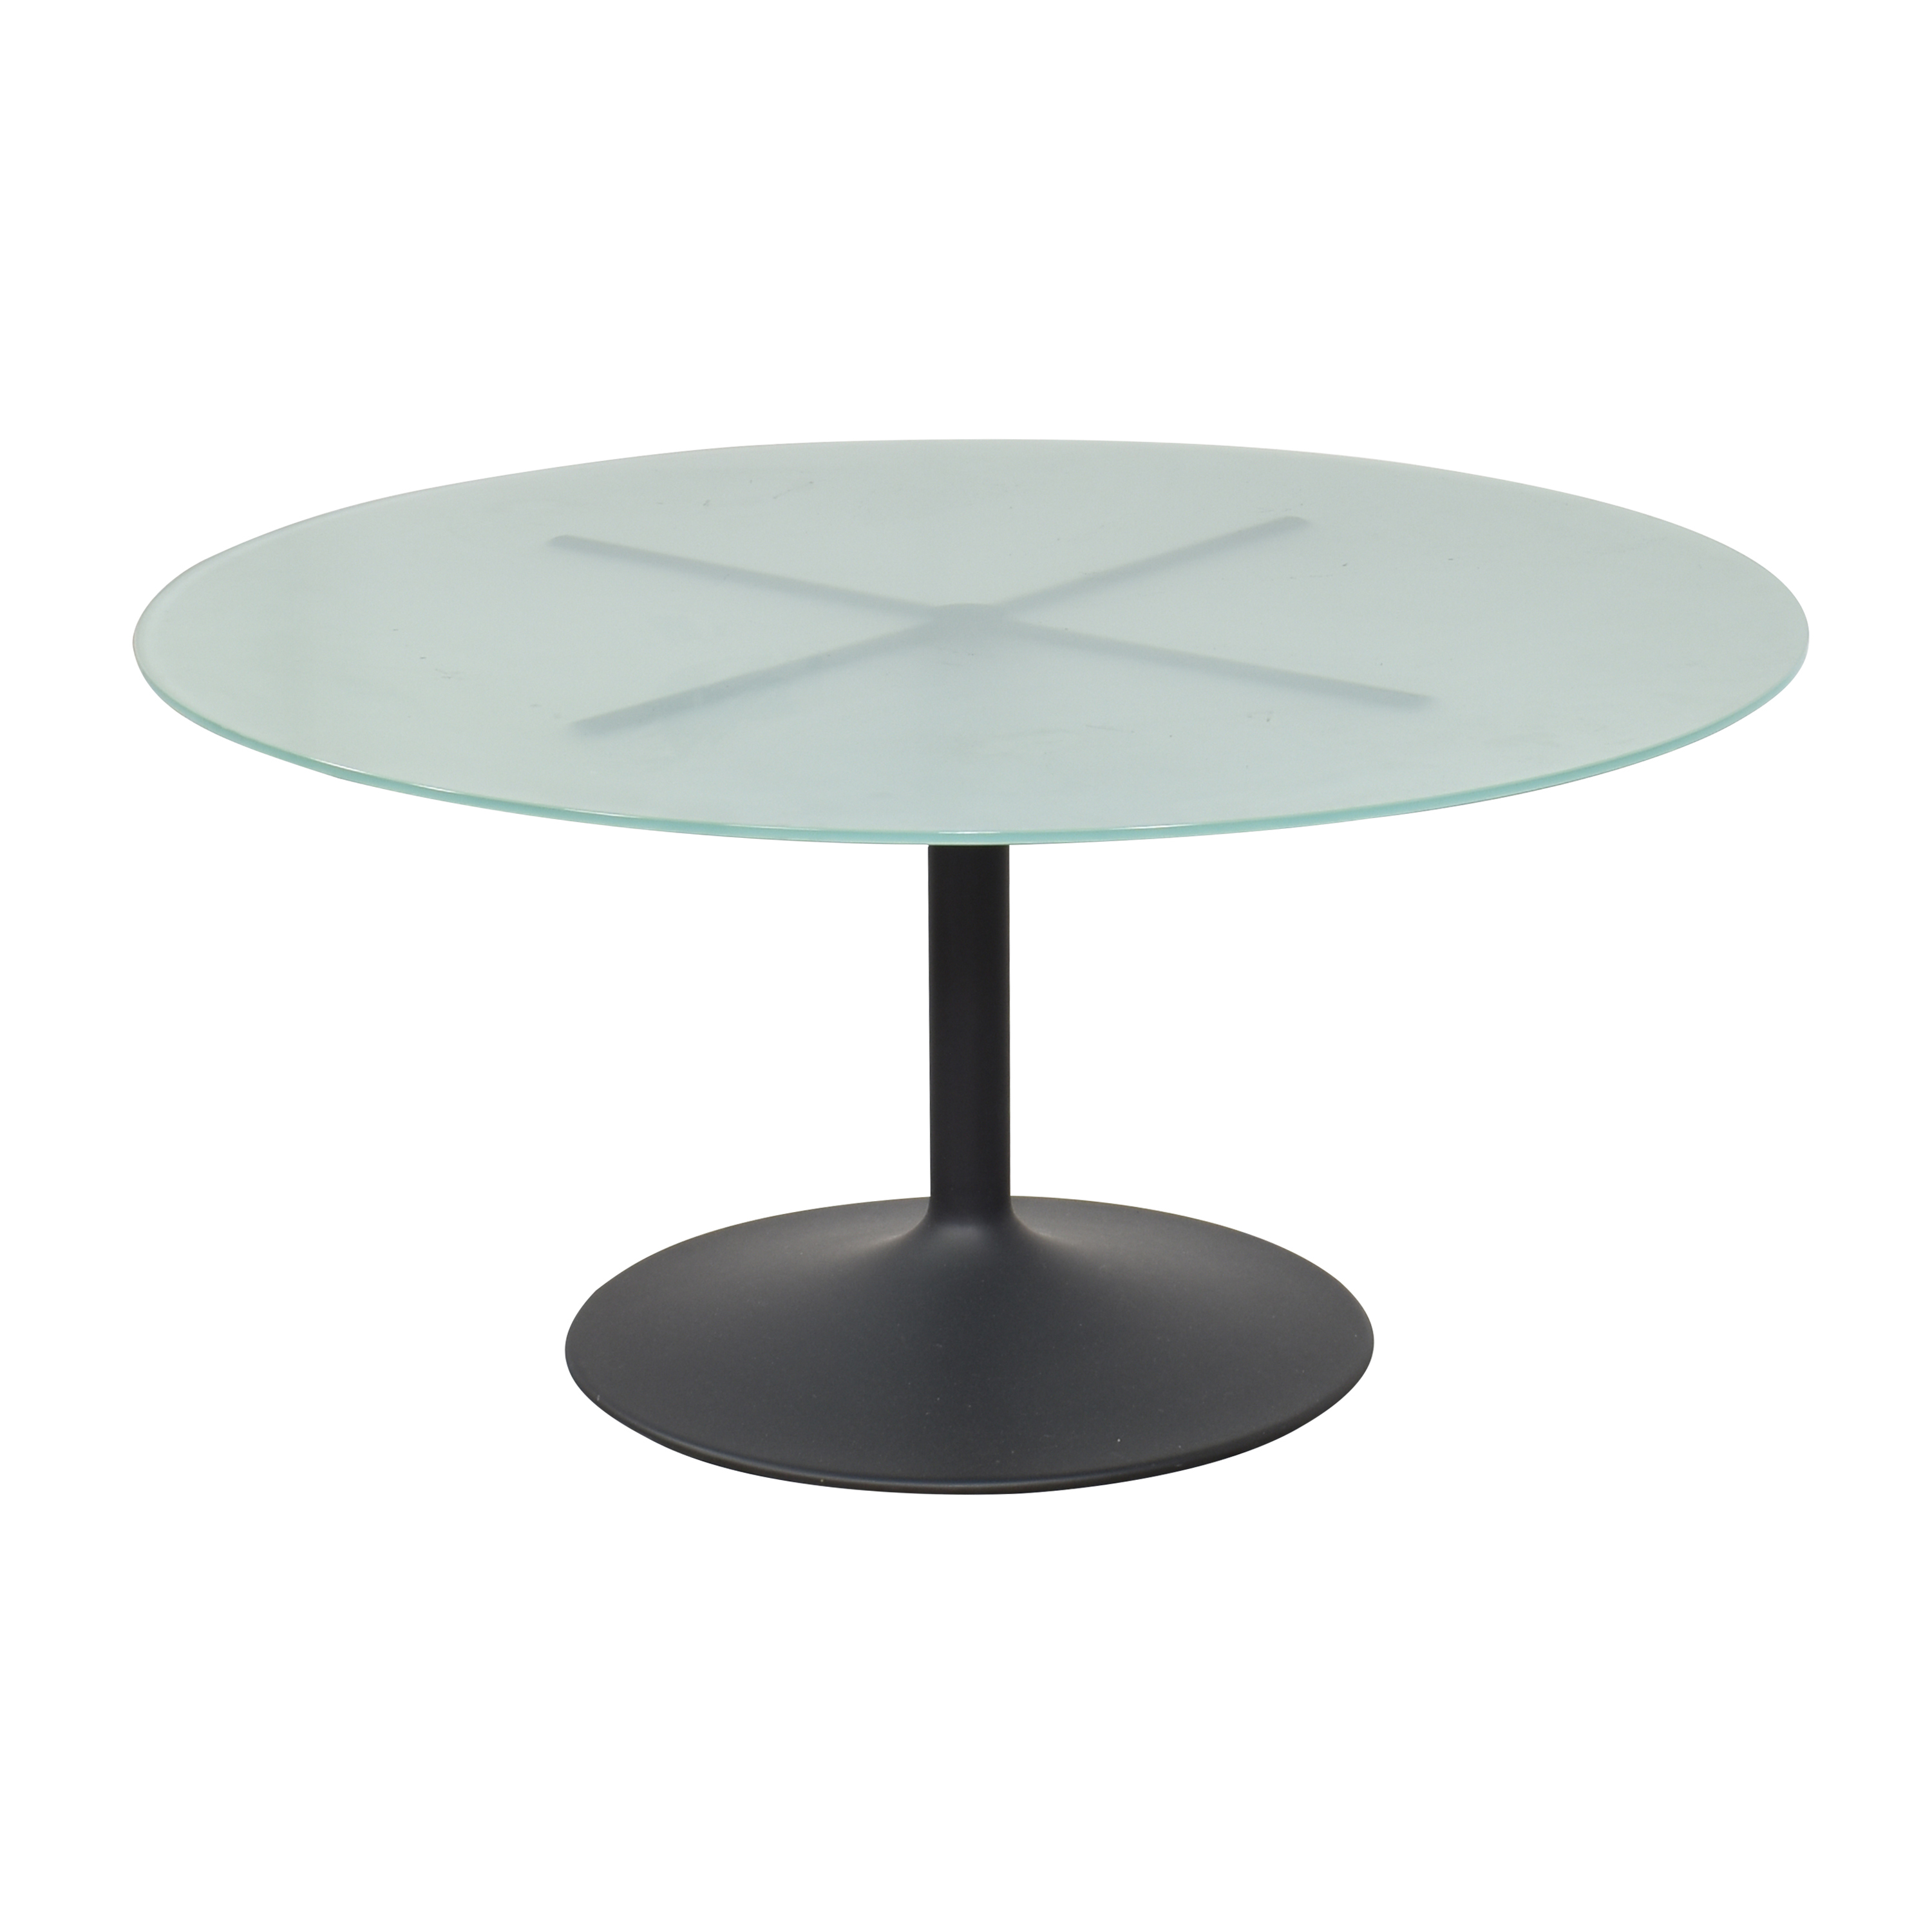 Room & Board Room & Board Aria Round Pedestal Dining Table ct